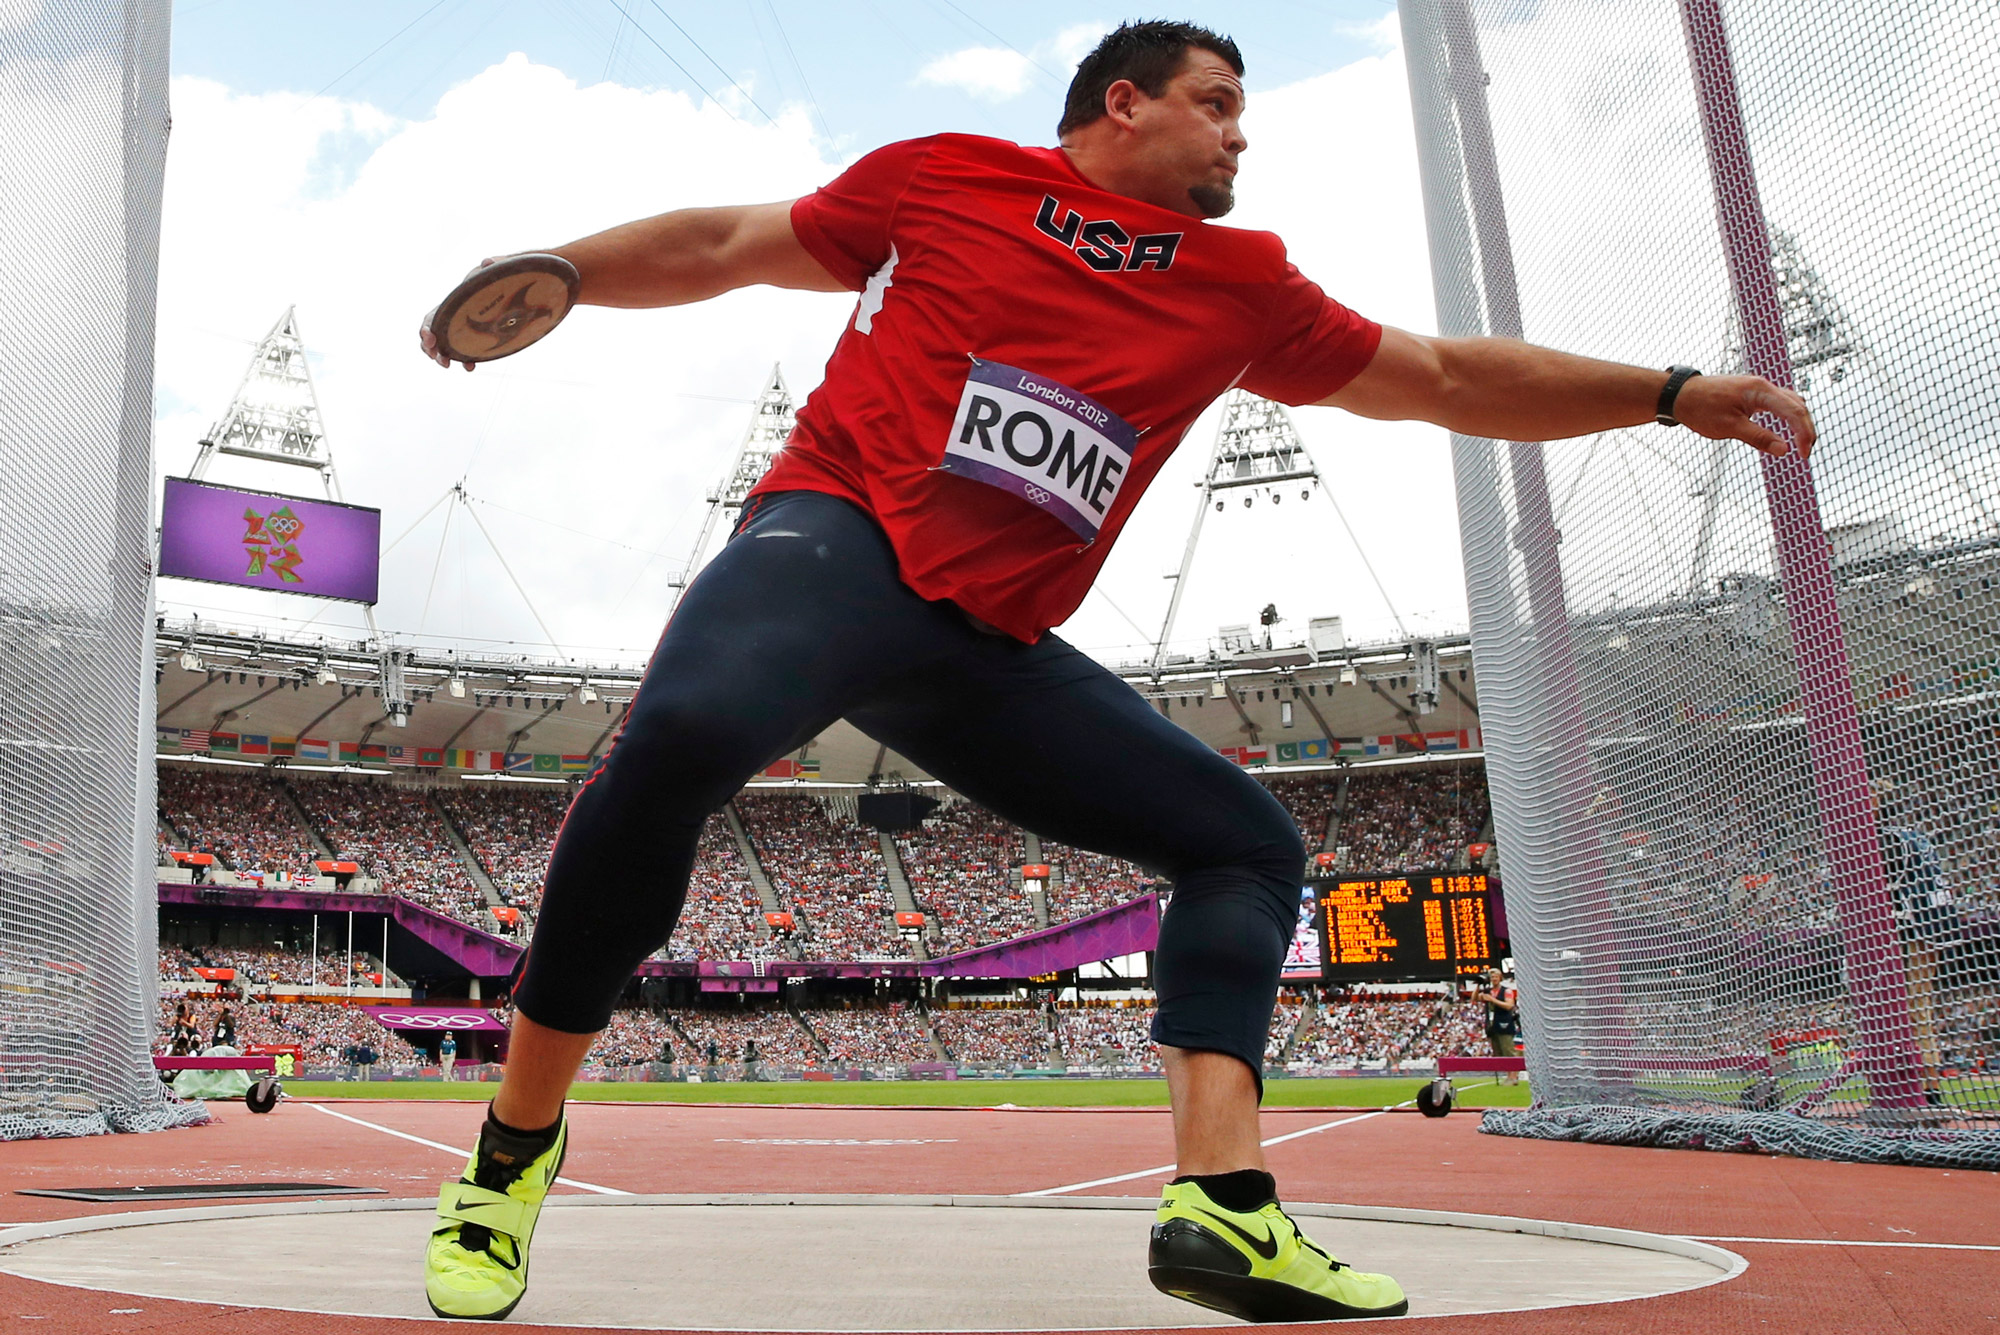 United States' Jarred Rome takes a throw in the men's discus throw qualification round during the athletics in the Olympic Stadium at the 2012 Summer Olympics, London